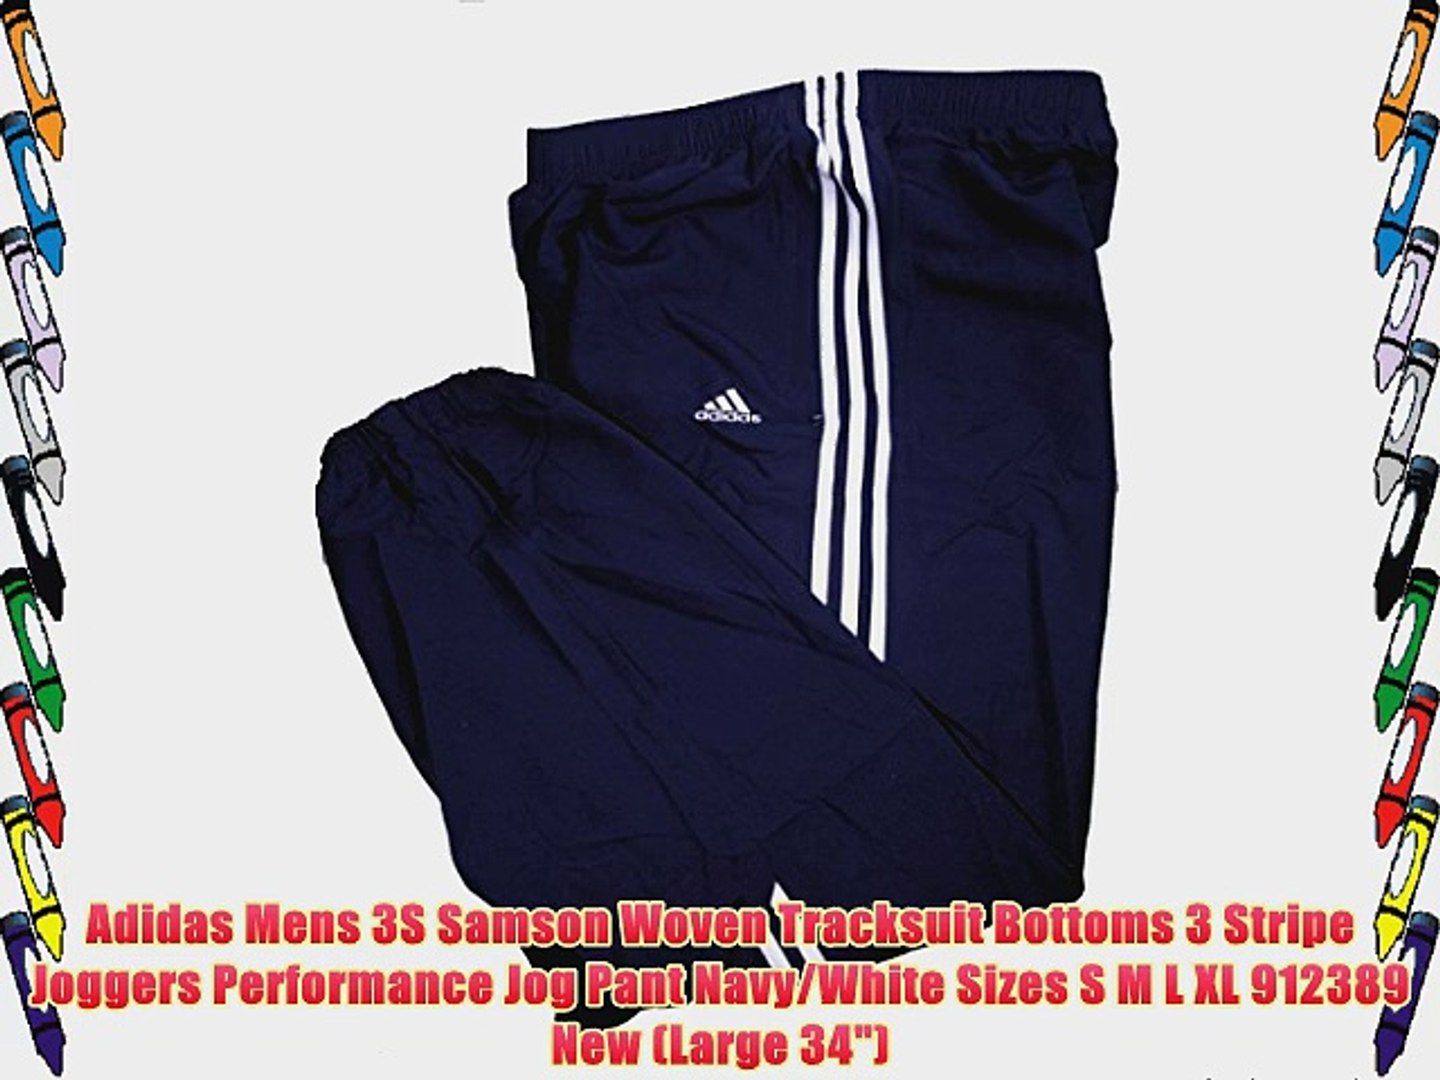 adidas fleece tracksuit bottoms